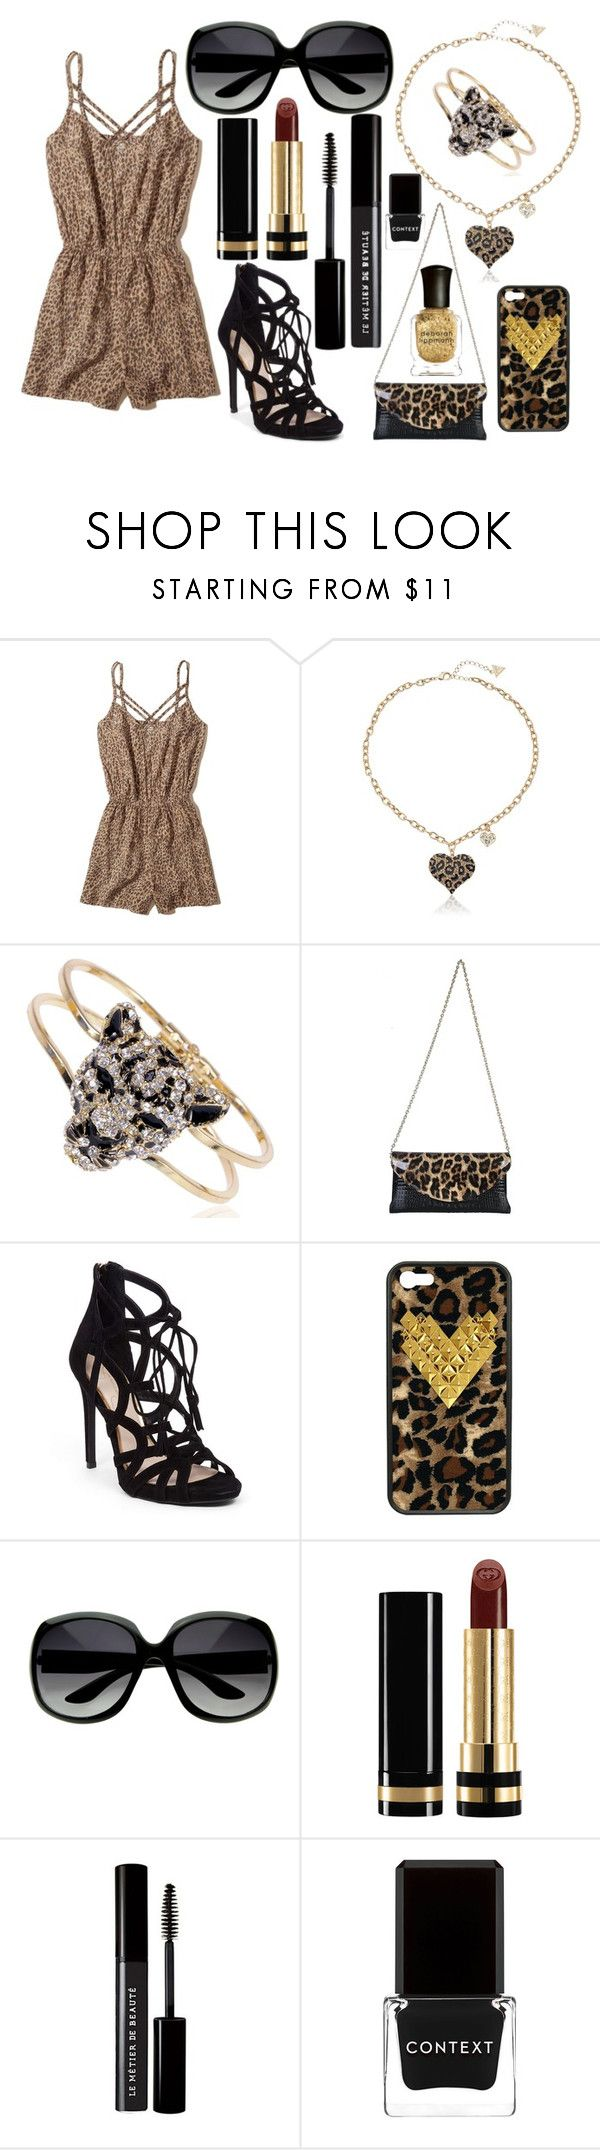 """Cheetah Outfit"" by army-woman on Polyvore featuring Hollister Co., GUESS, Jessica Simpson, Wildflower, Gucci, Le Métier de Beauté, Context and Deborah Lippmann"